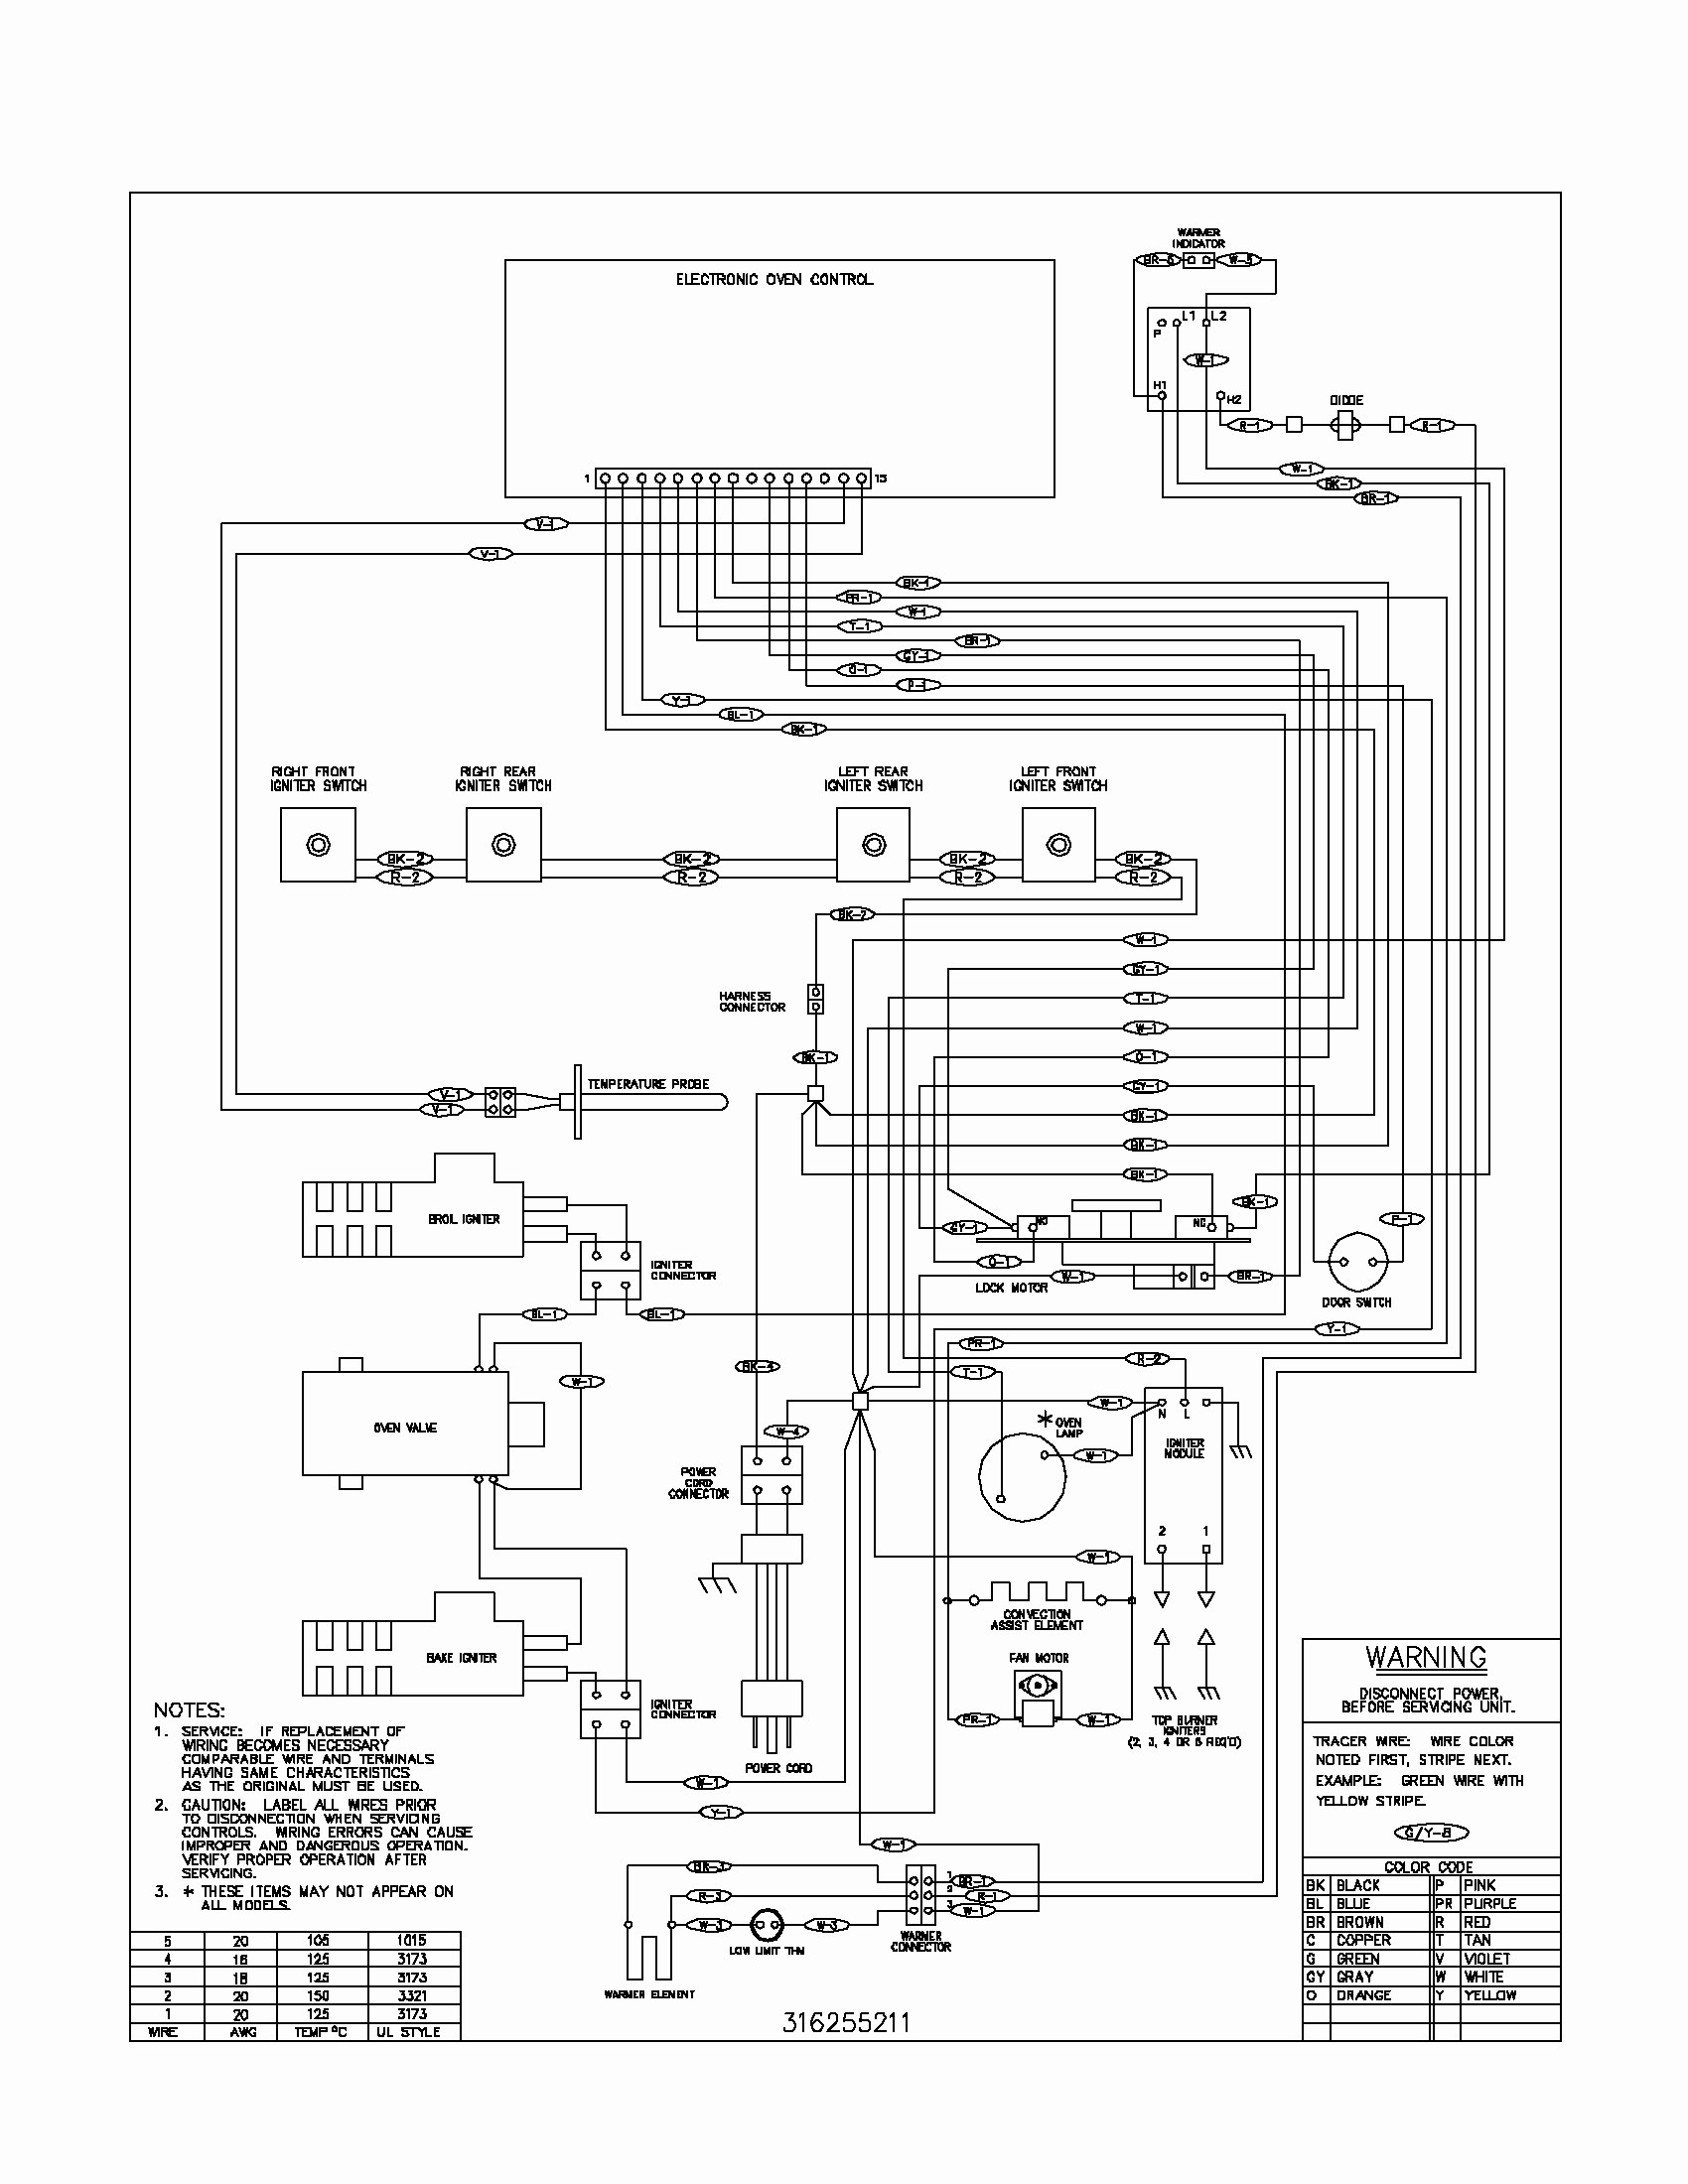 240v stove wiring diagram online circuit wiring diagram u2022 rh cabcaller co uk